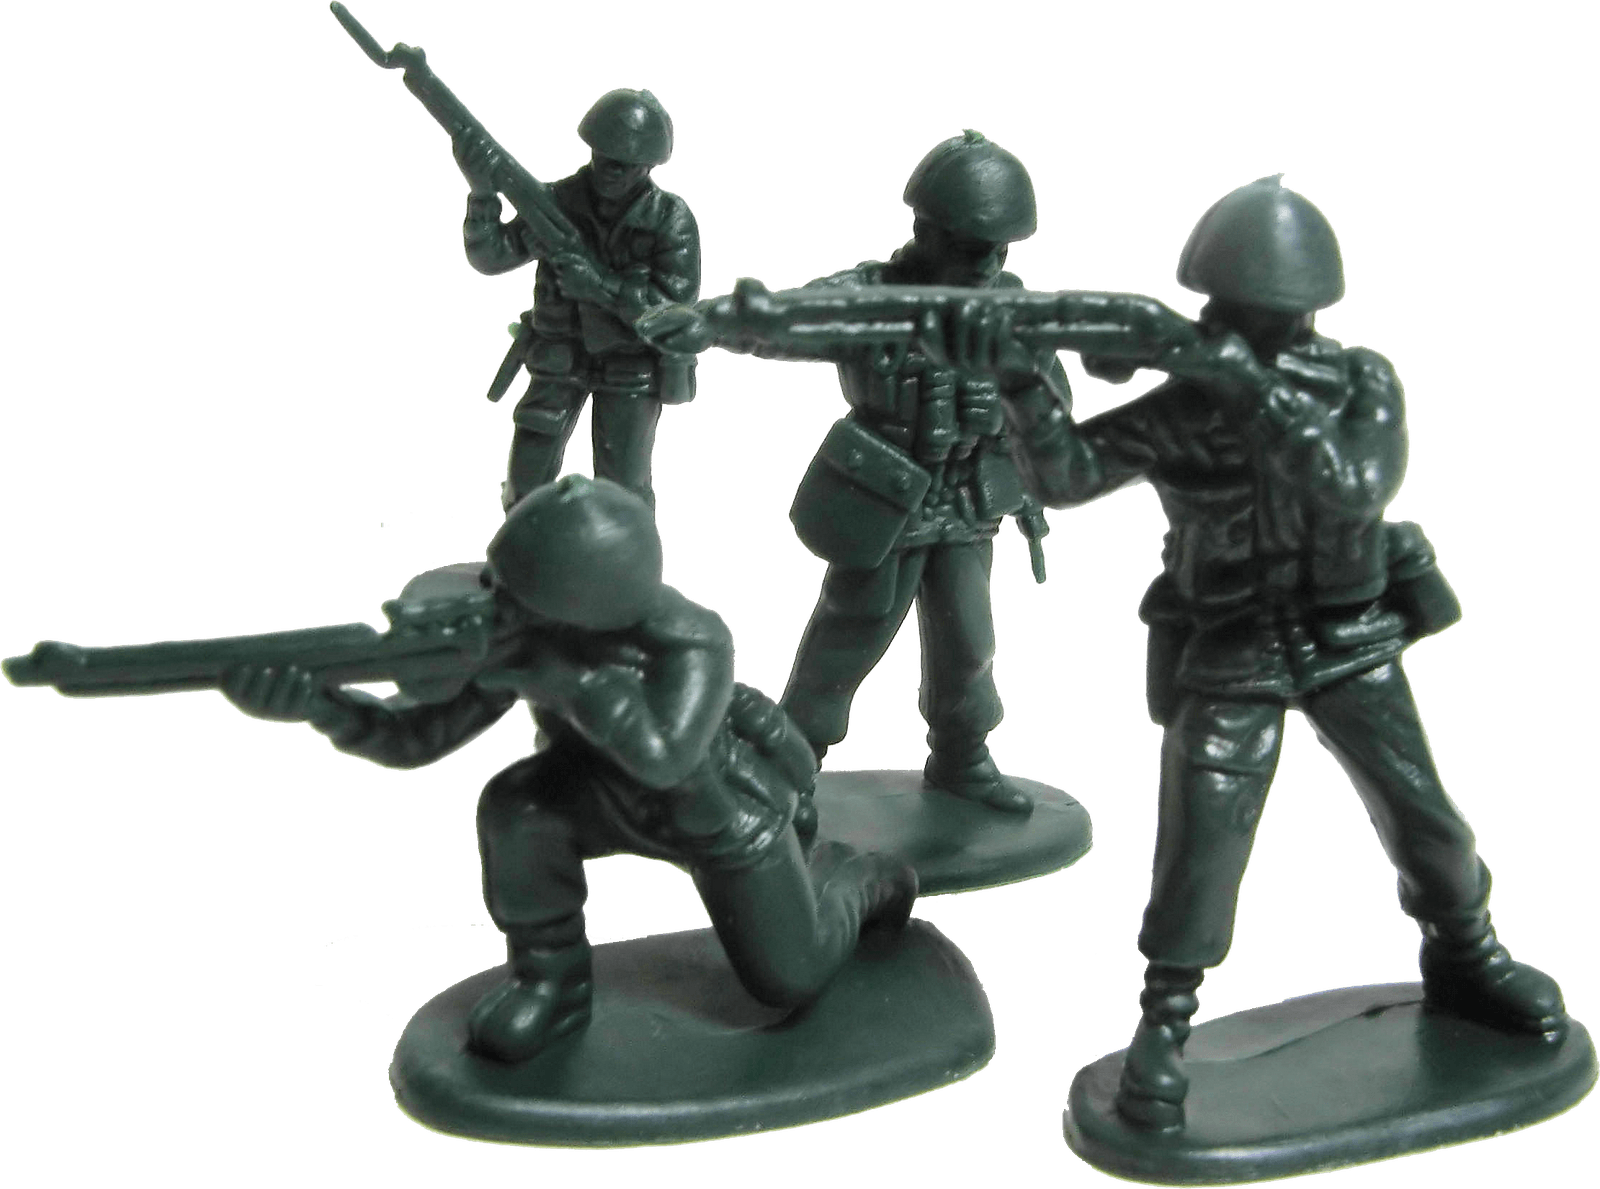 Toy Soldiers transparent PNG.